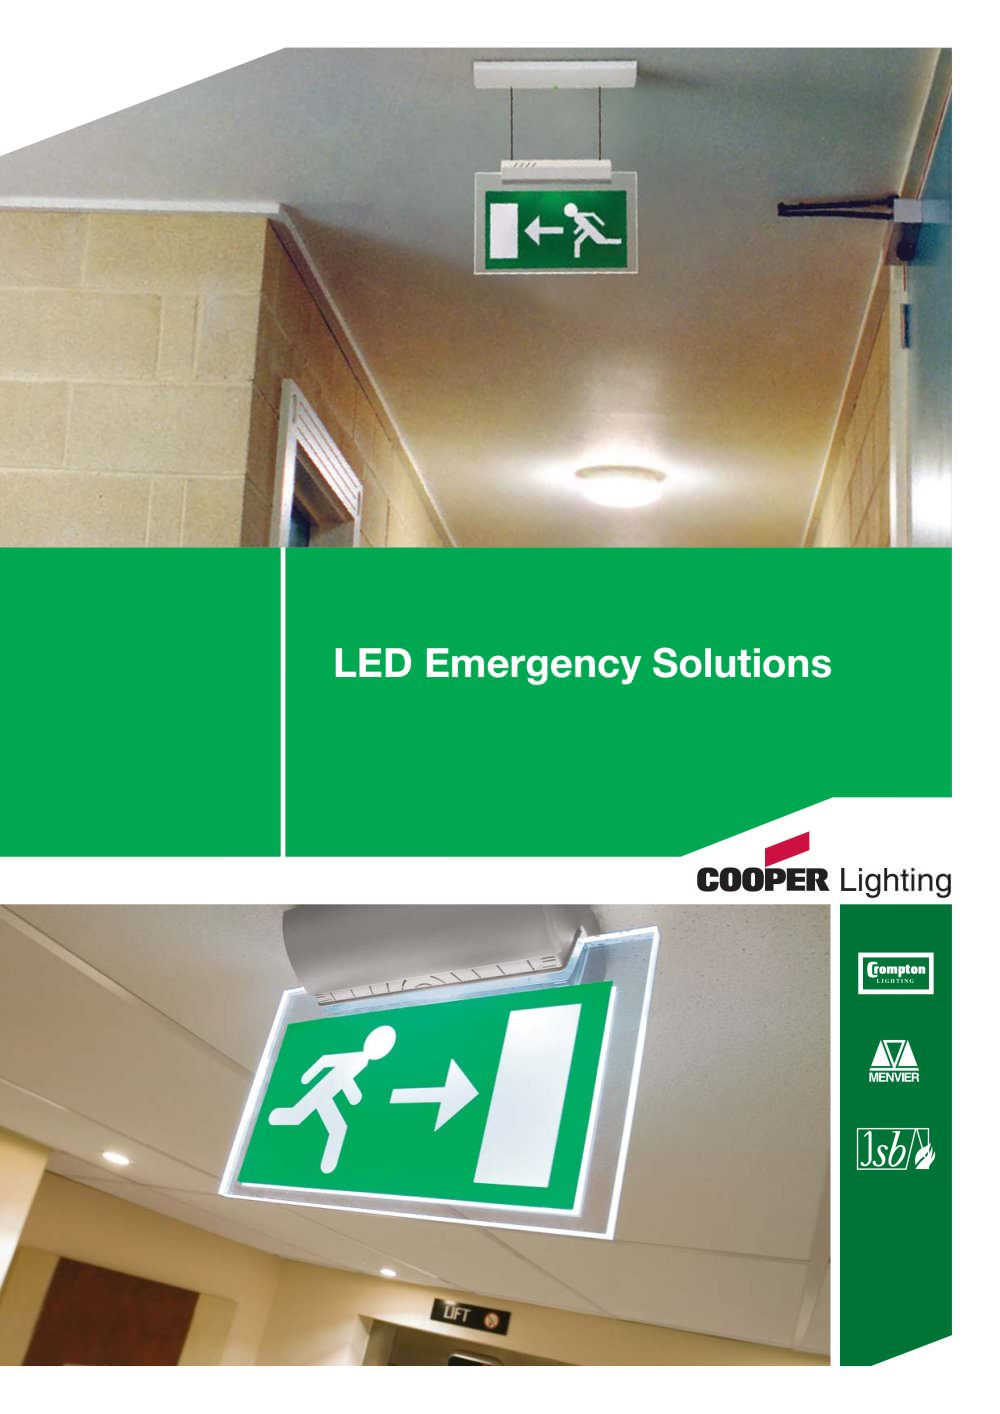 led emergency solutions cooper lighting and safety pdf catalogue